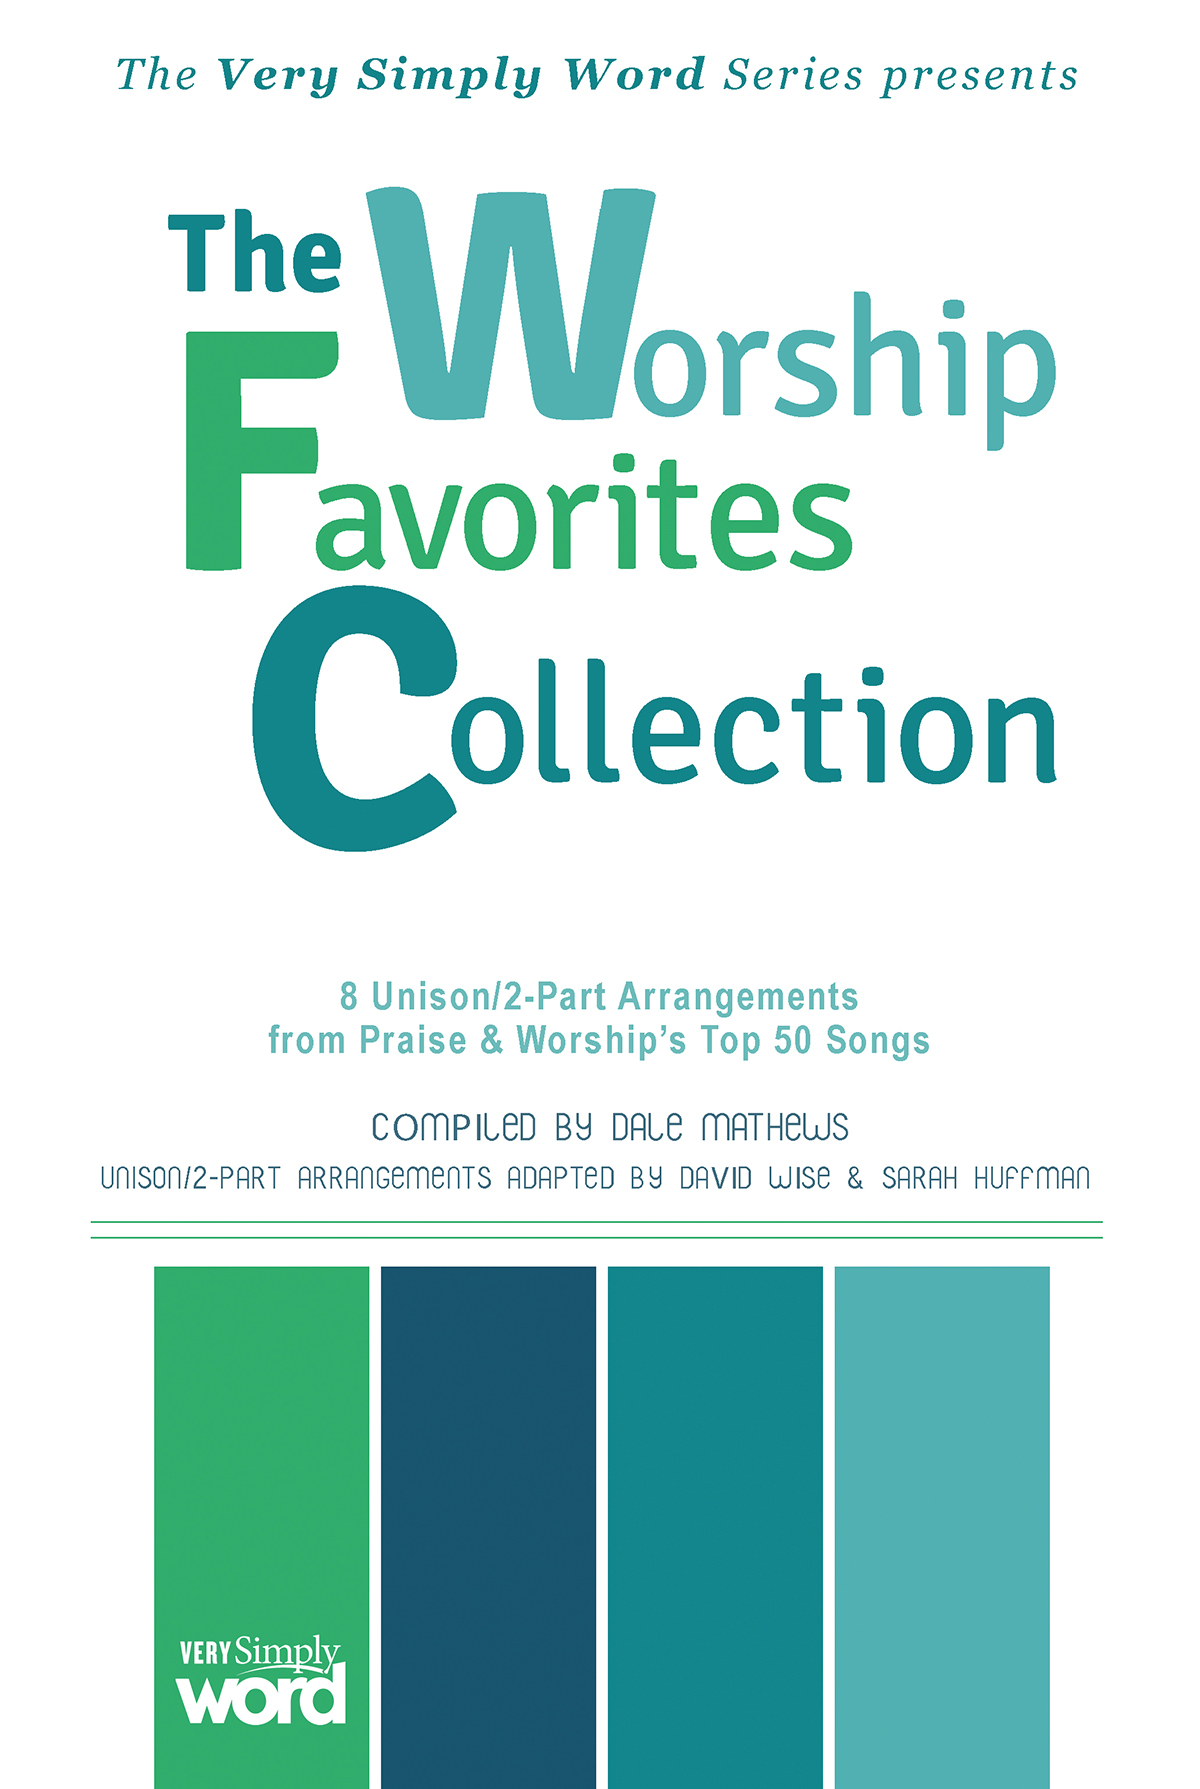 The Worship Favorites Collection